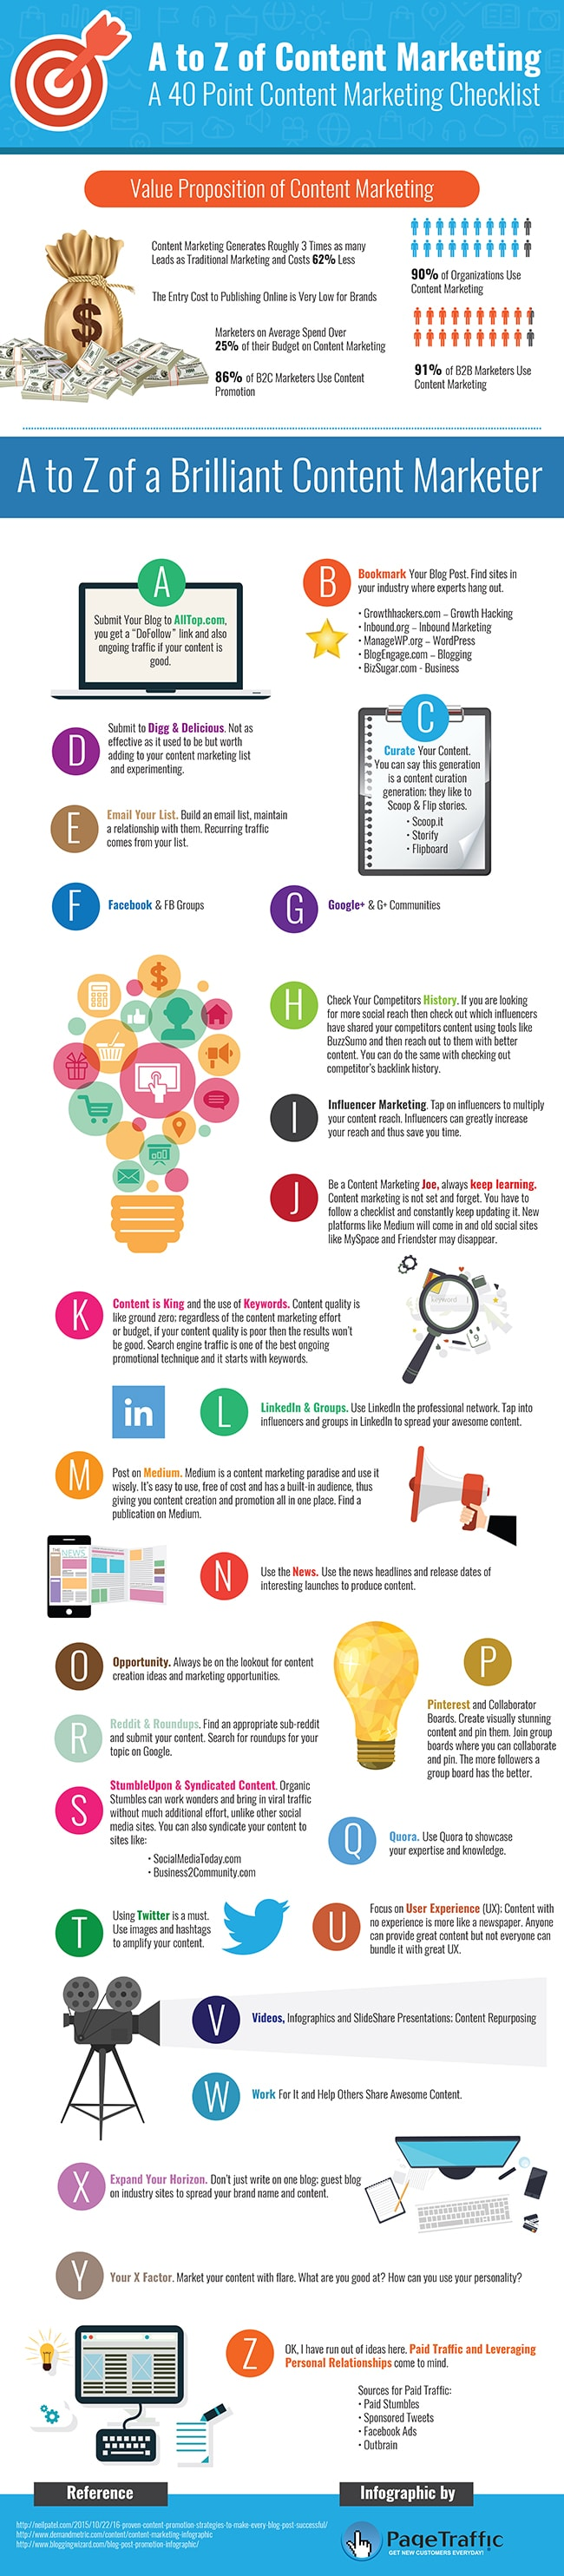 A-Z Content Marketing infographic